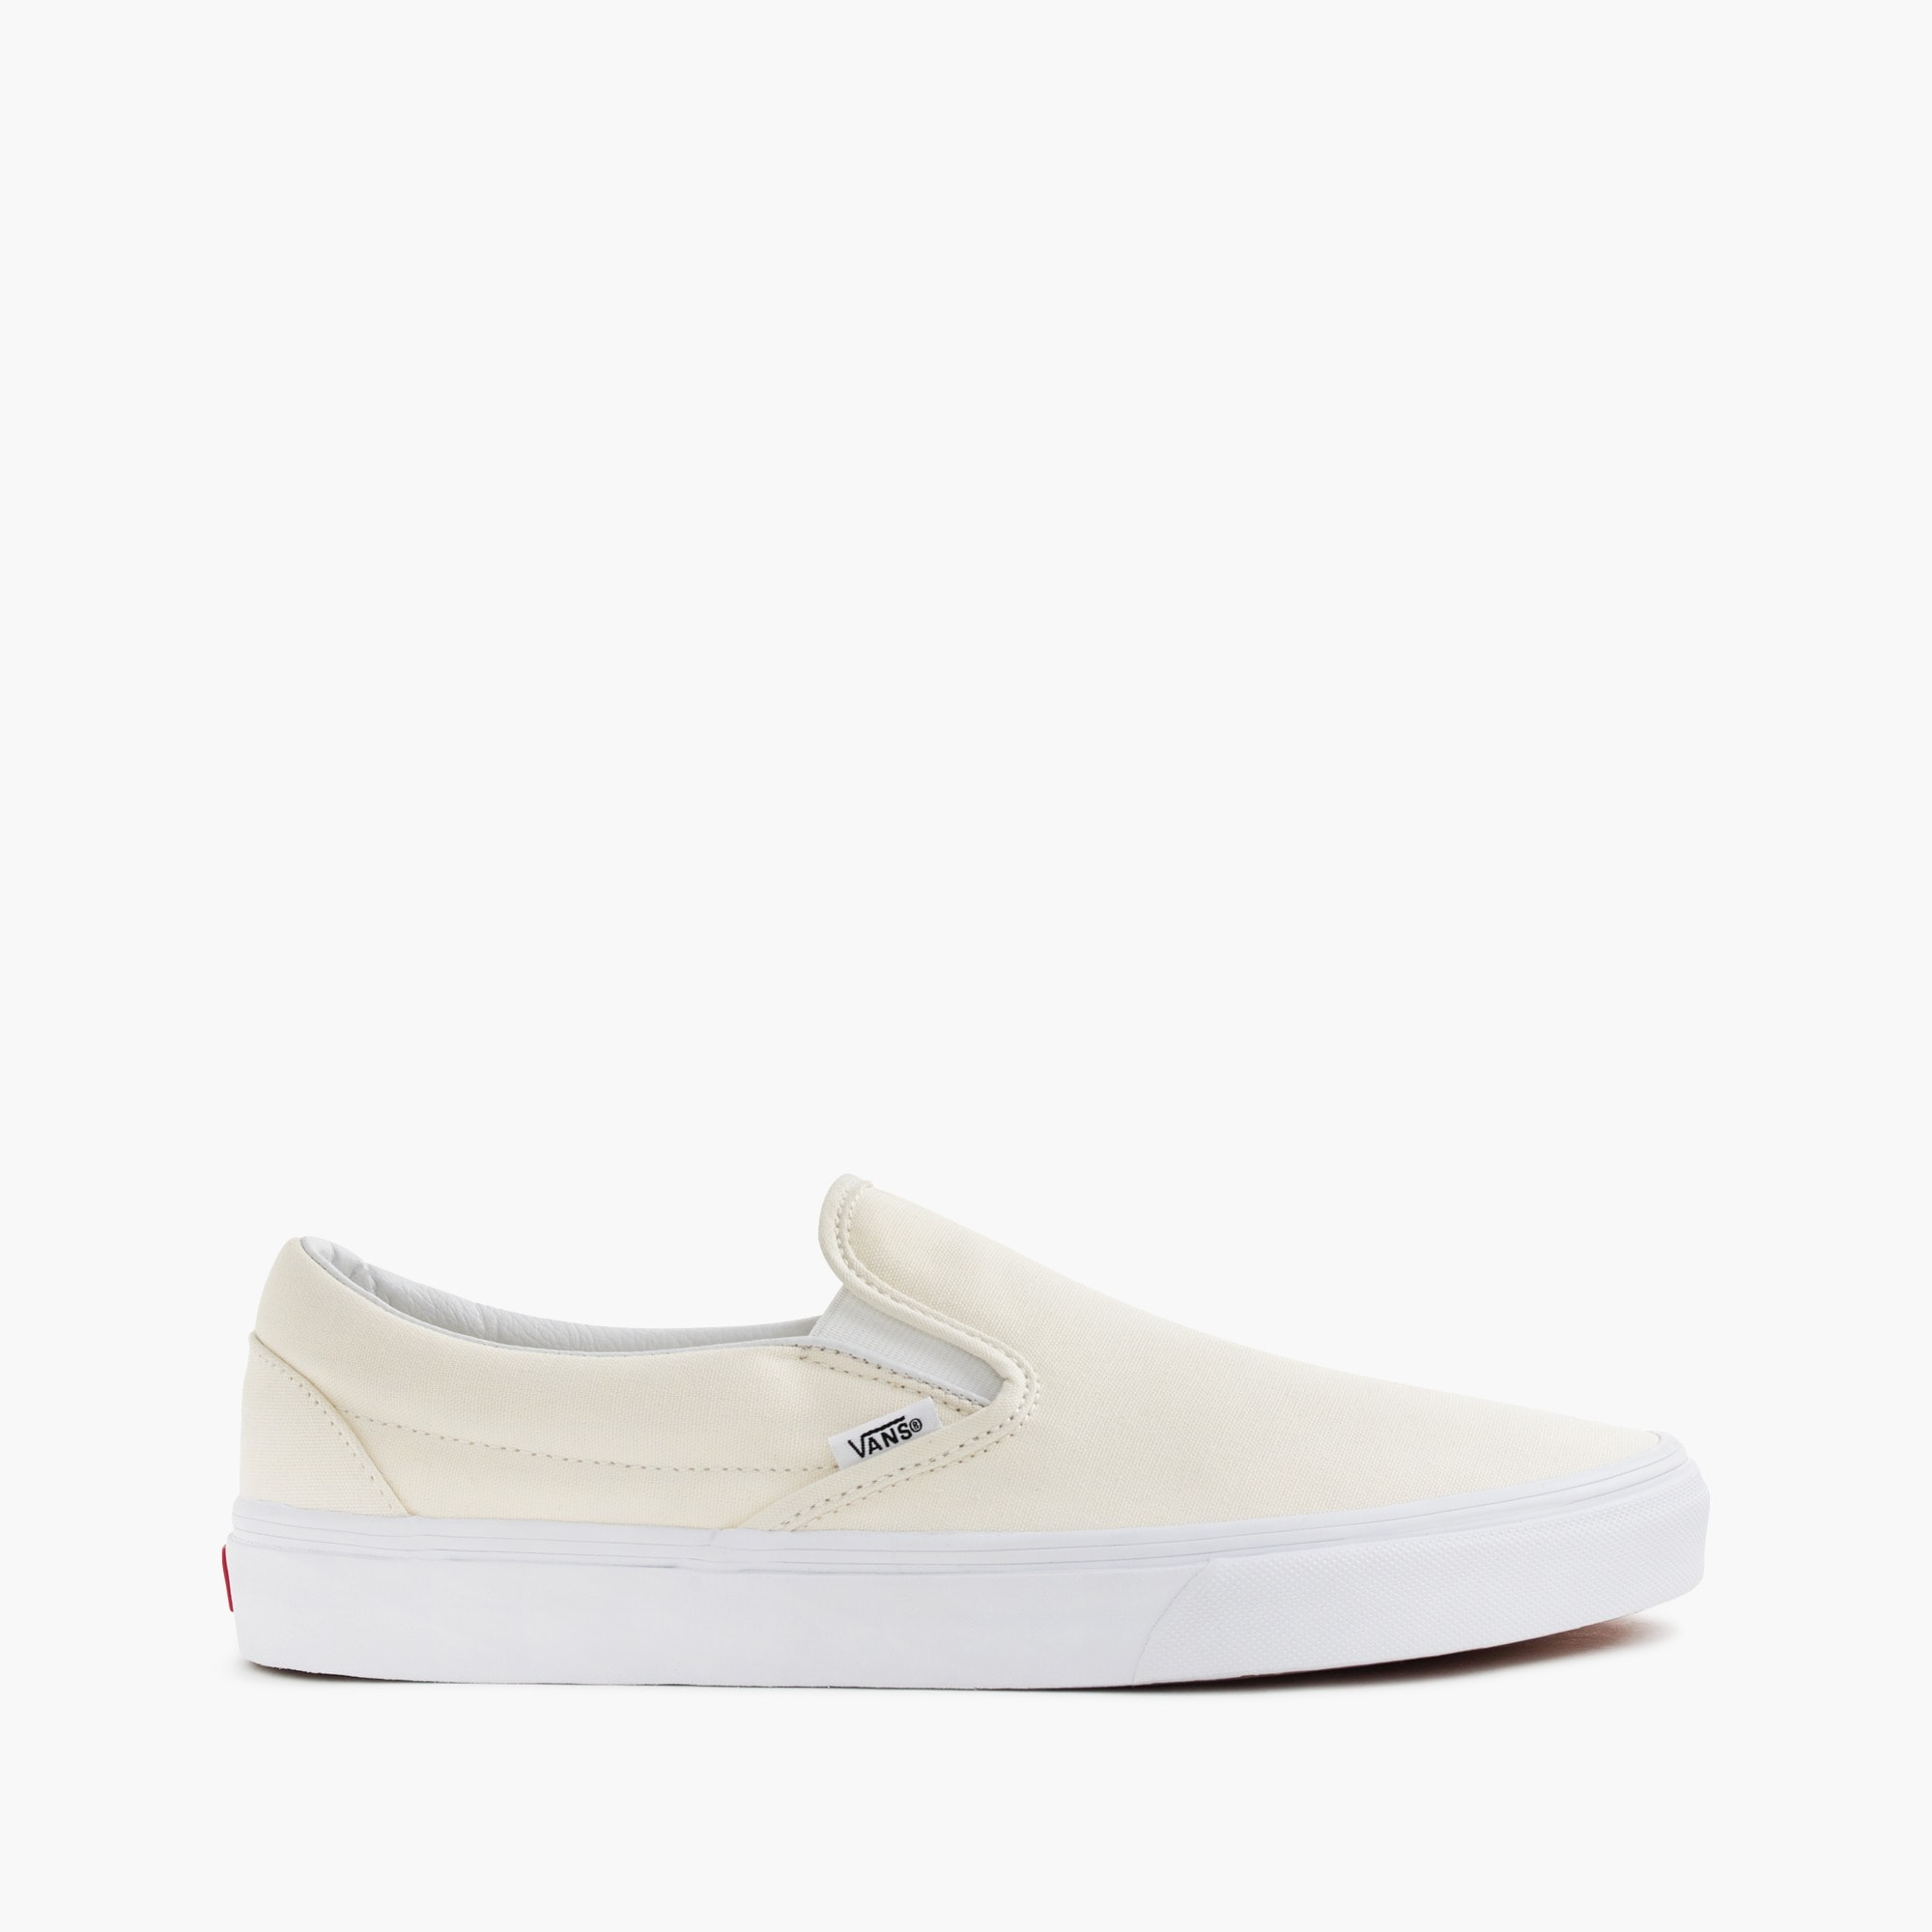 Men's Vans® canvas slip-on sneakers